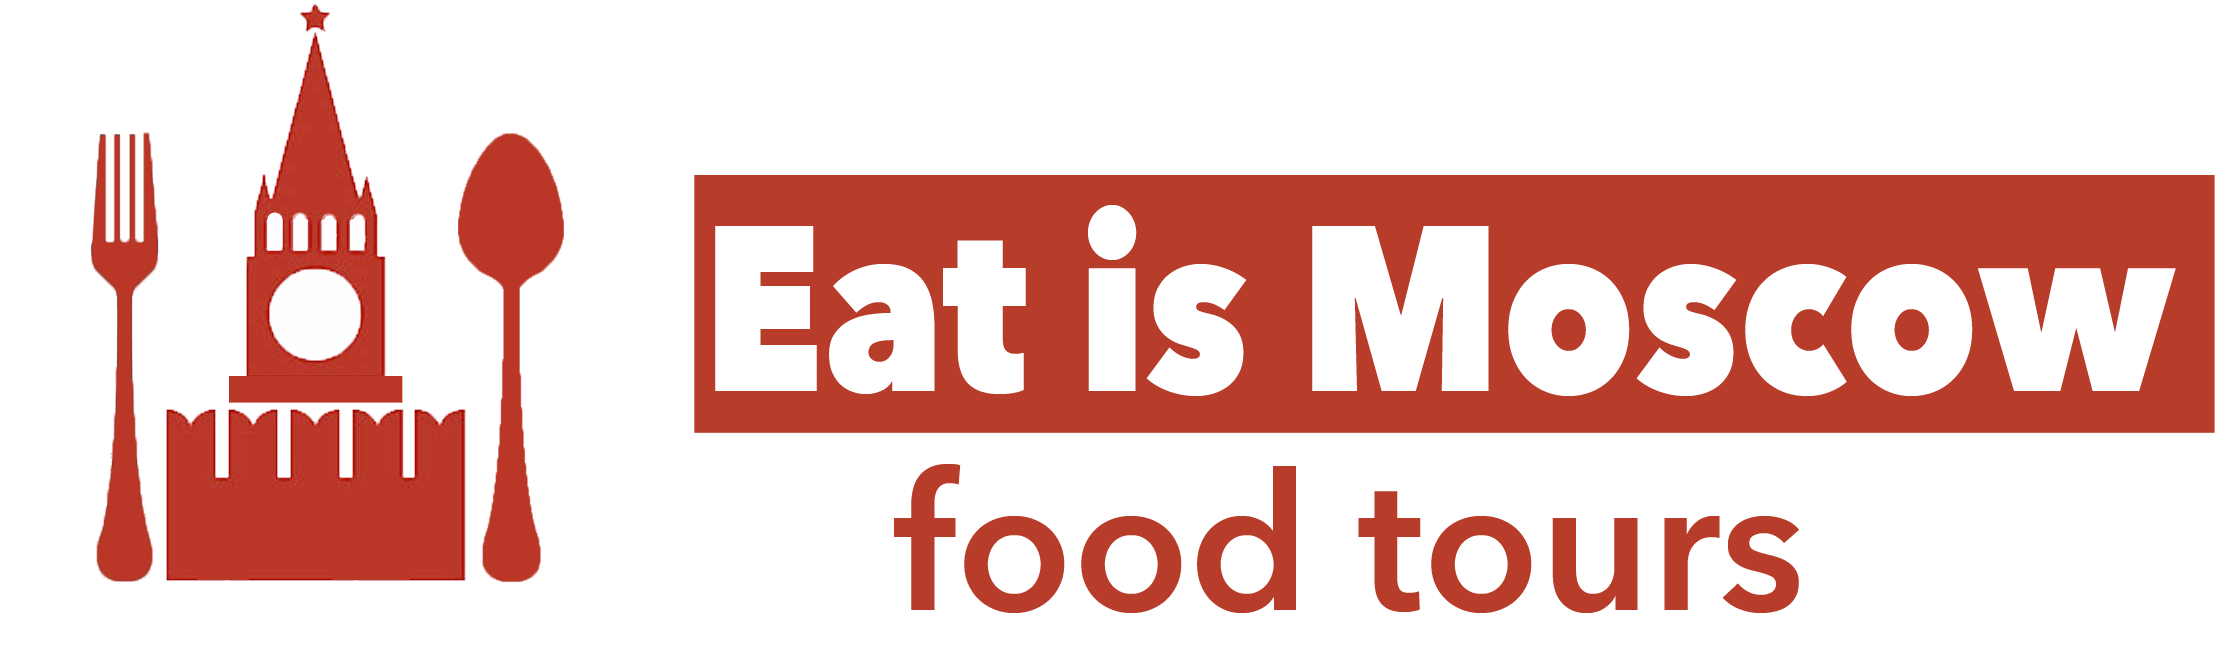 Eat is Moscow